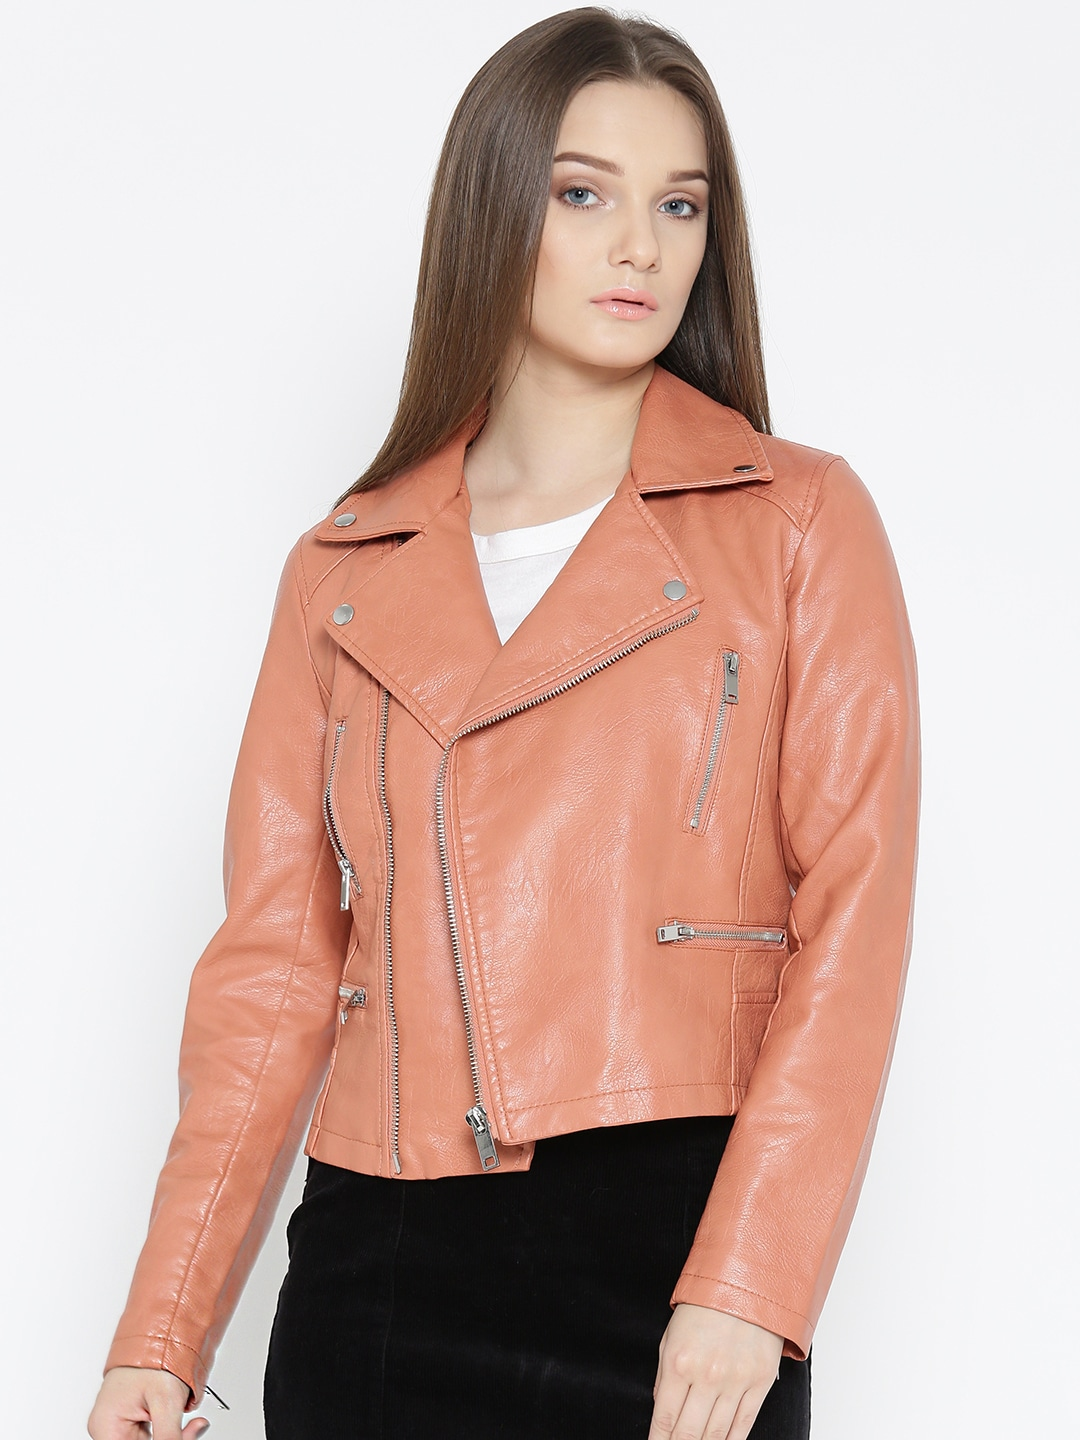 leather jacket for womens forever 21 india cairoamanicom